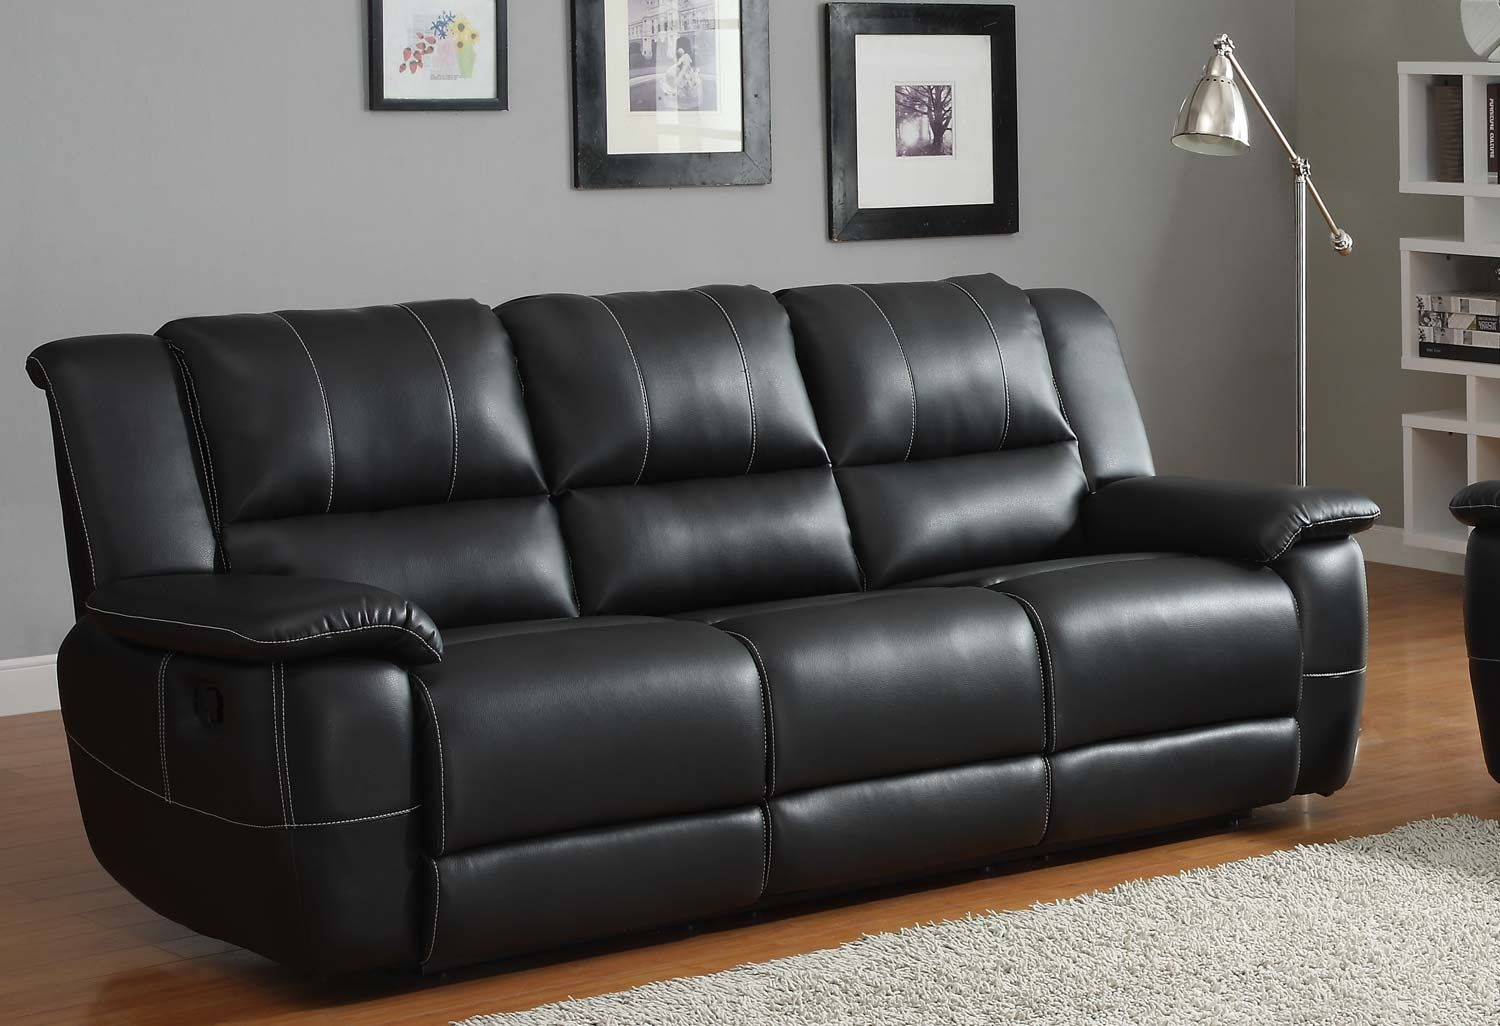 Black leather sofa and chair set best collections of